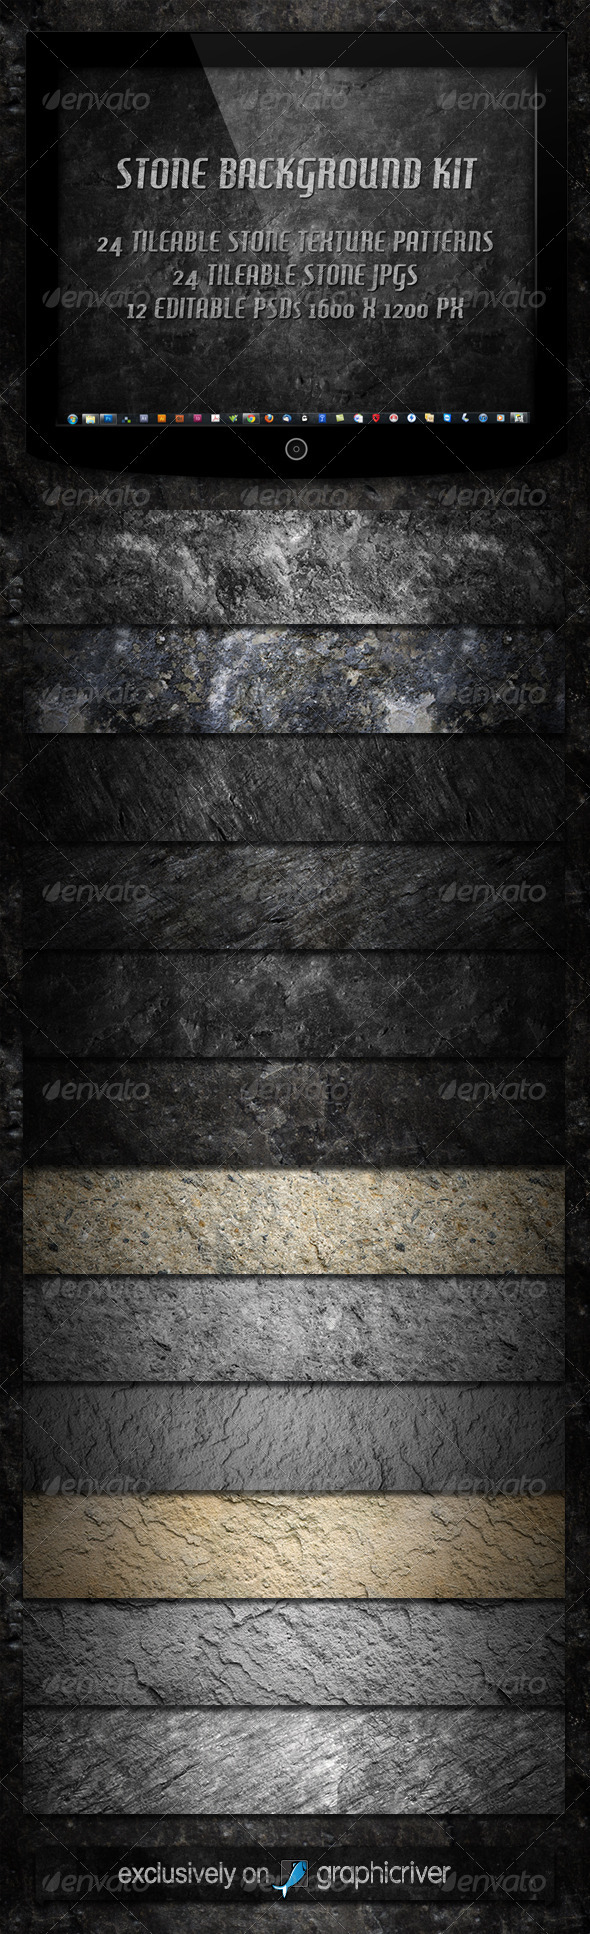 12 Tileable Stone Textures Background Kit  #GraphicRiver         The Tileable Stone Background Kit contains the following files:  	 12 tileable .JPG files in 1024×1024 px resolution 12 tileable .JPG files in 512×512 px resolution 1 .PAT file including 24 photoshop patterns 12 editable .PSD files  	 You can use the files for nearly everything, webpage backgrounds, wallpapers, texturing etc.  	 It's easy to edit the .PSD files that the result fits to your belongings. Change the shadow by…